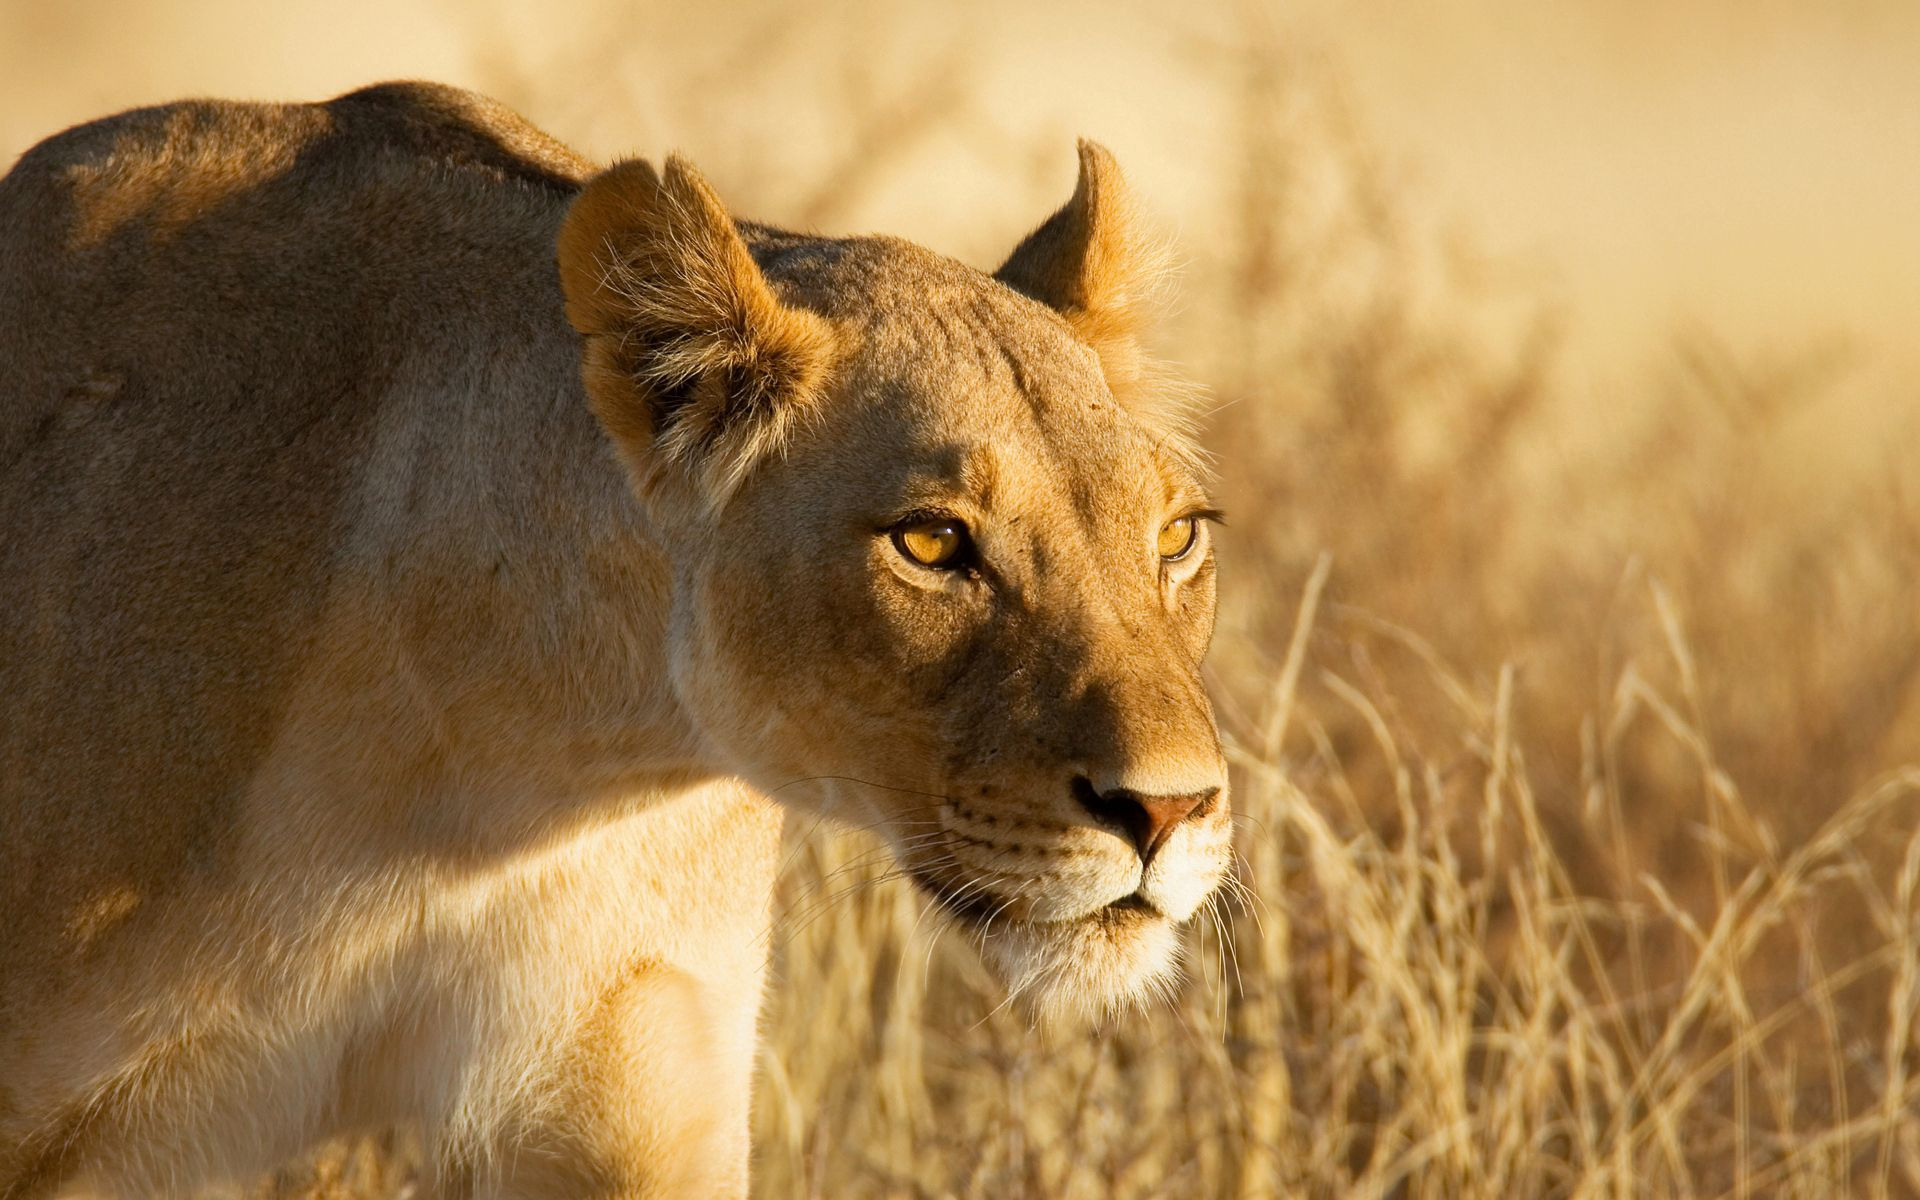 122499 download wallpaper Animals, Lioness, Muzzle, Danger, Hunting, Hunt screensavers and pictures for free